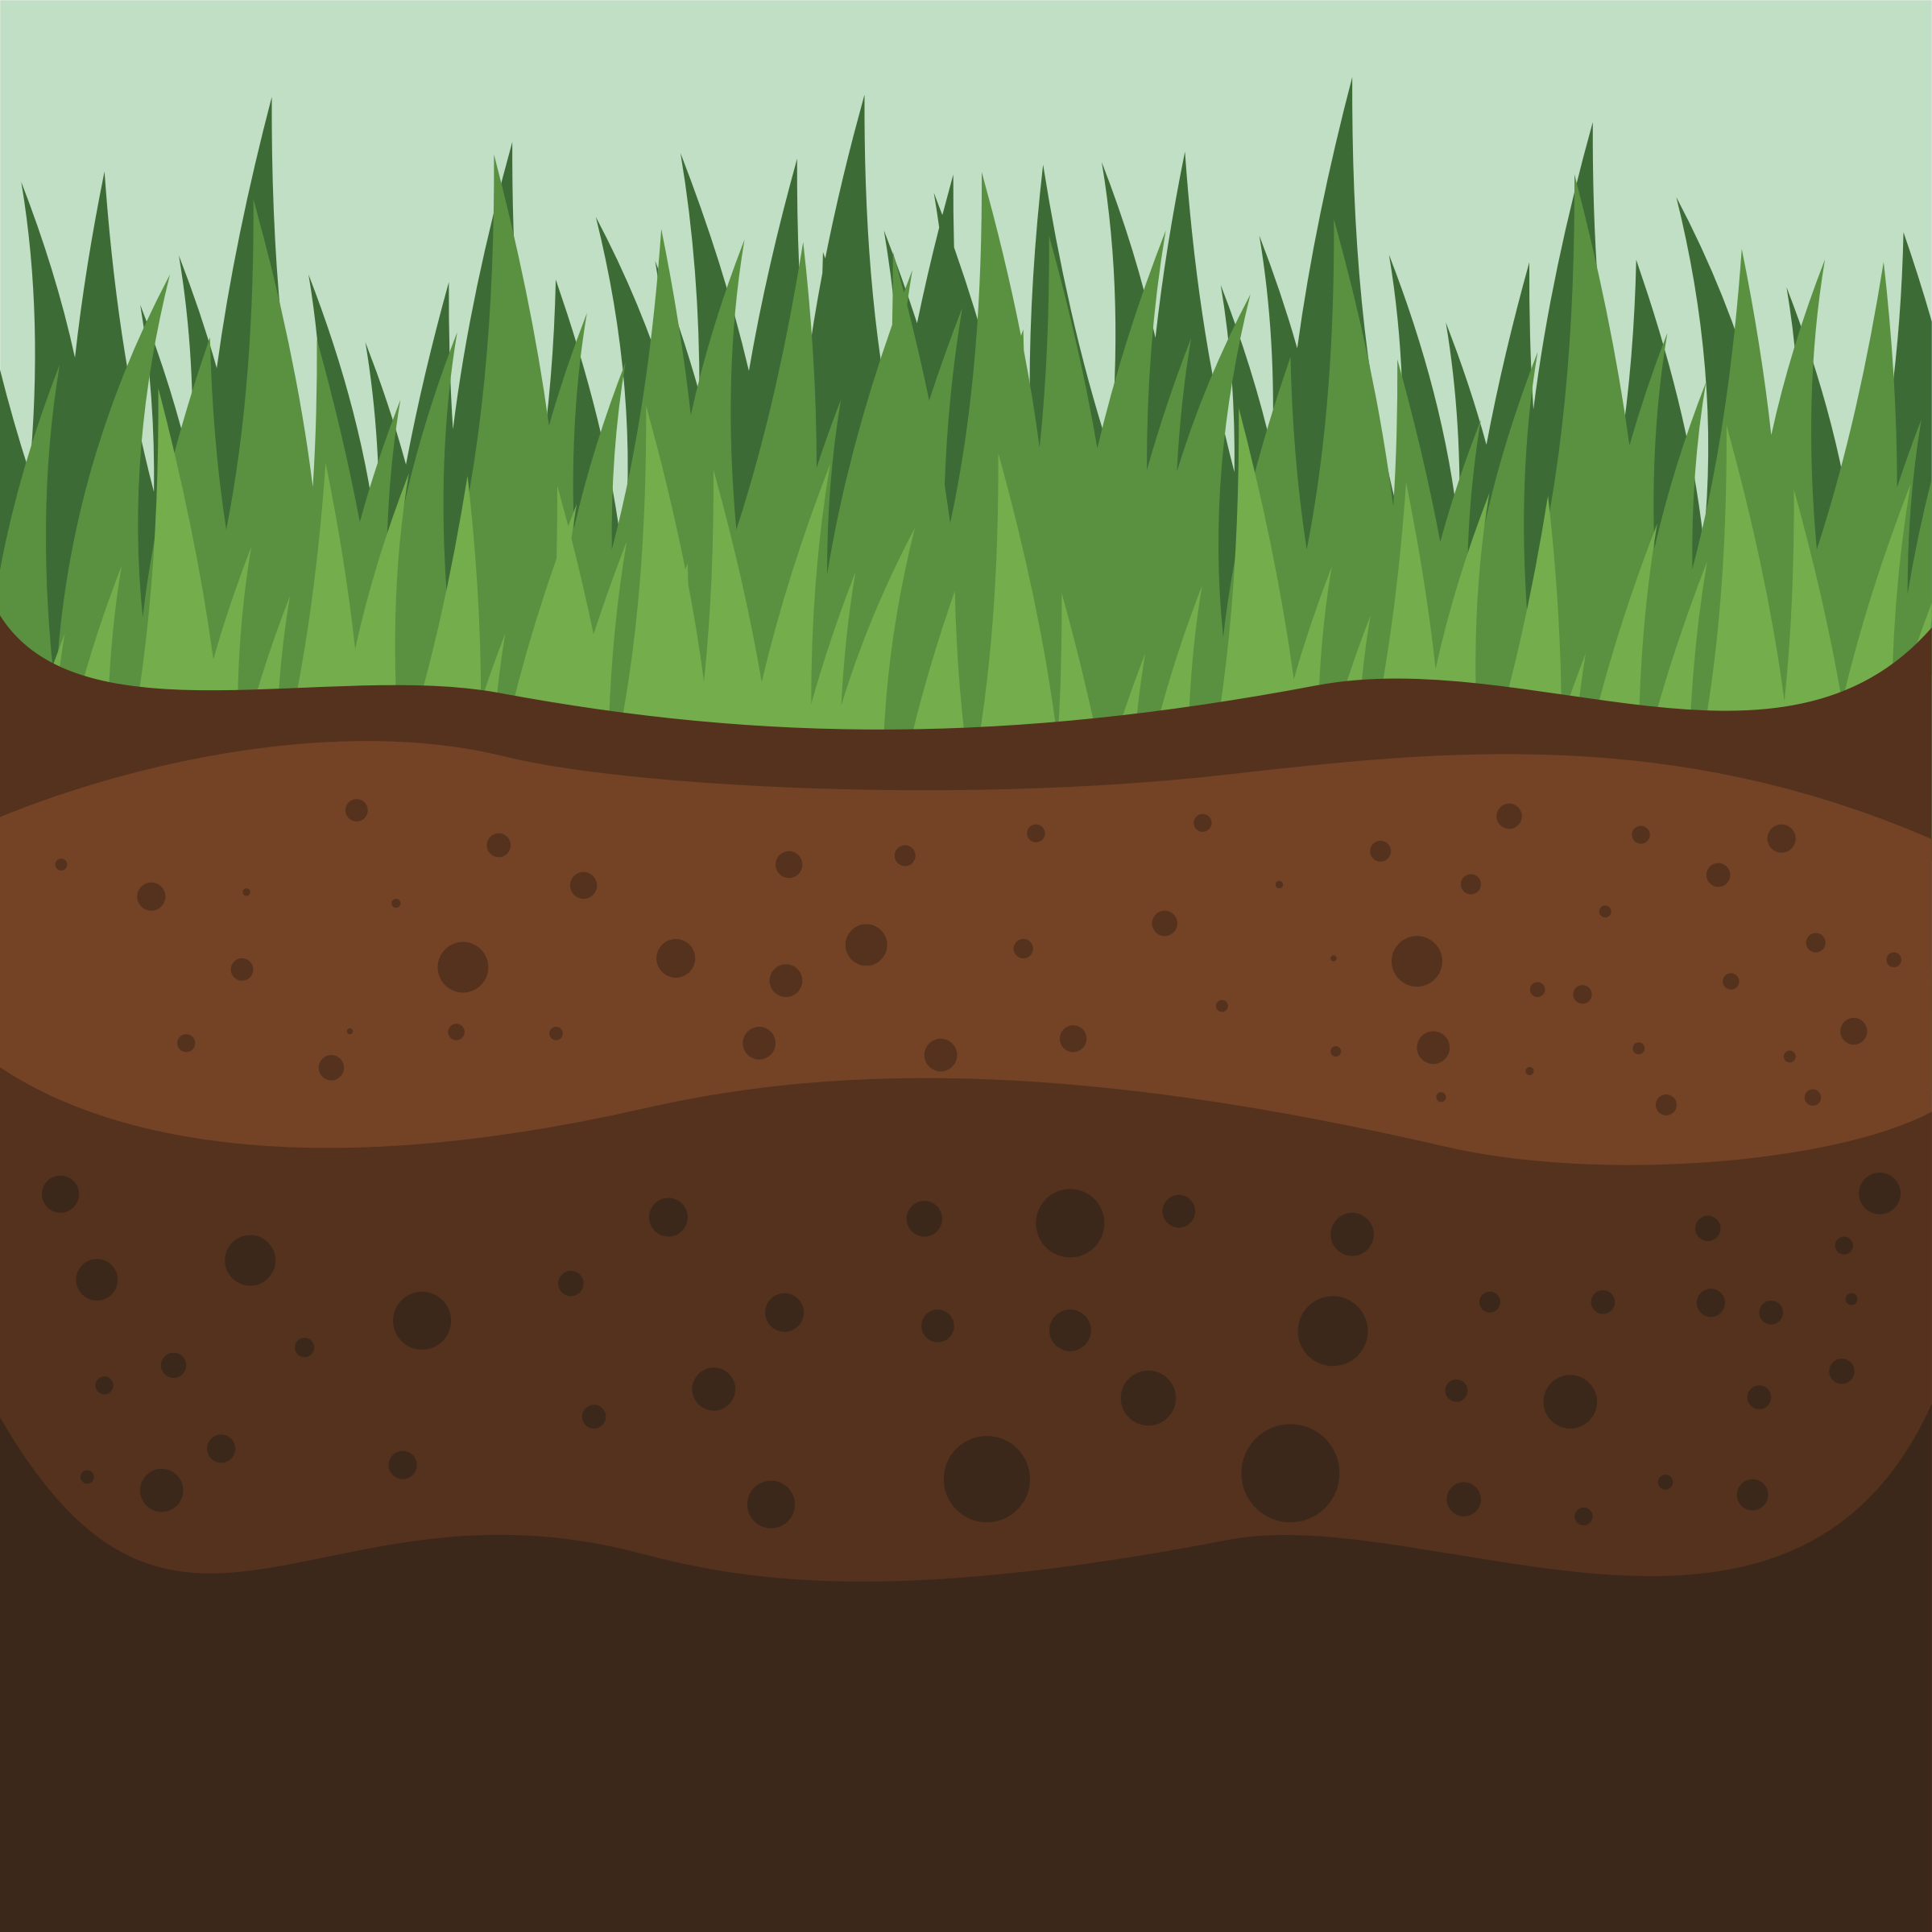 Clipart soil for Soil clipart